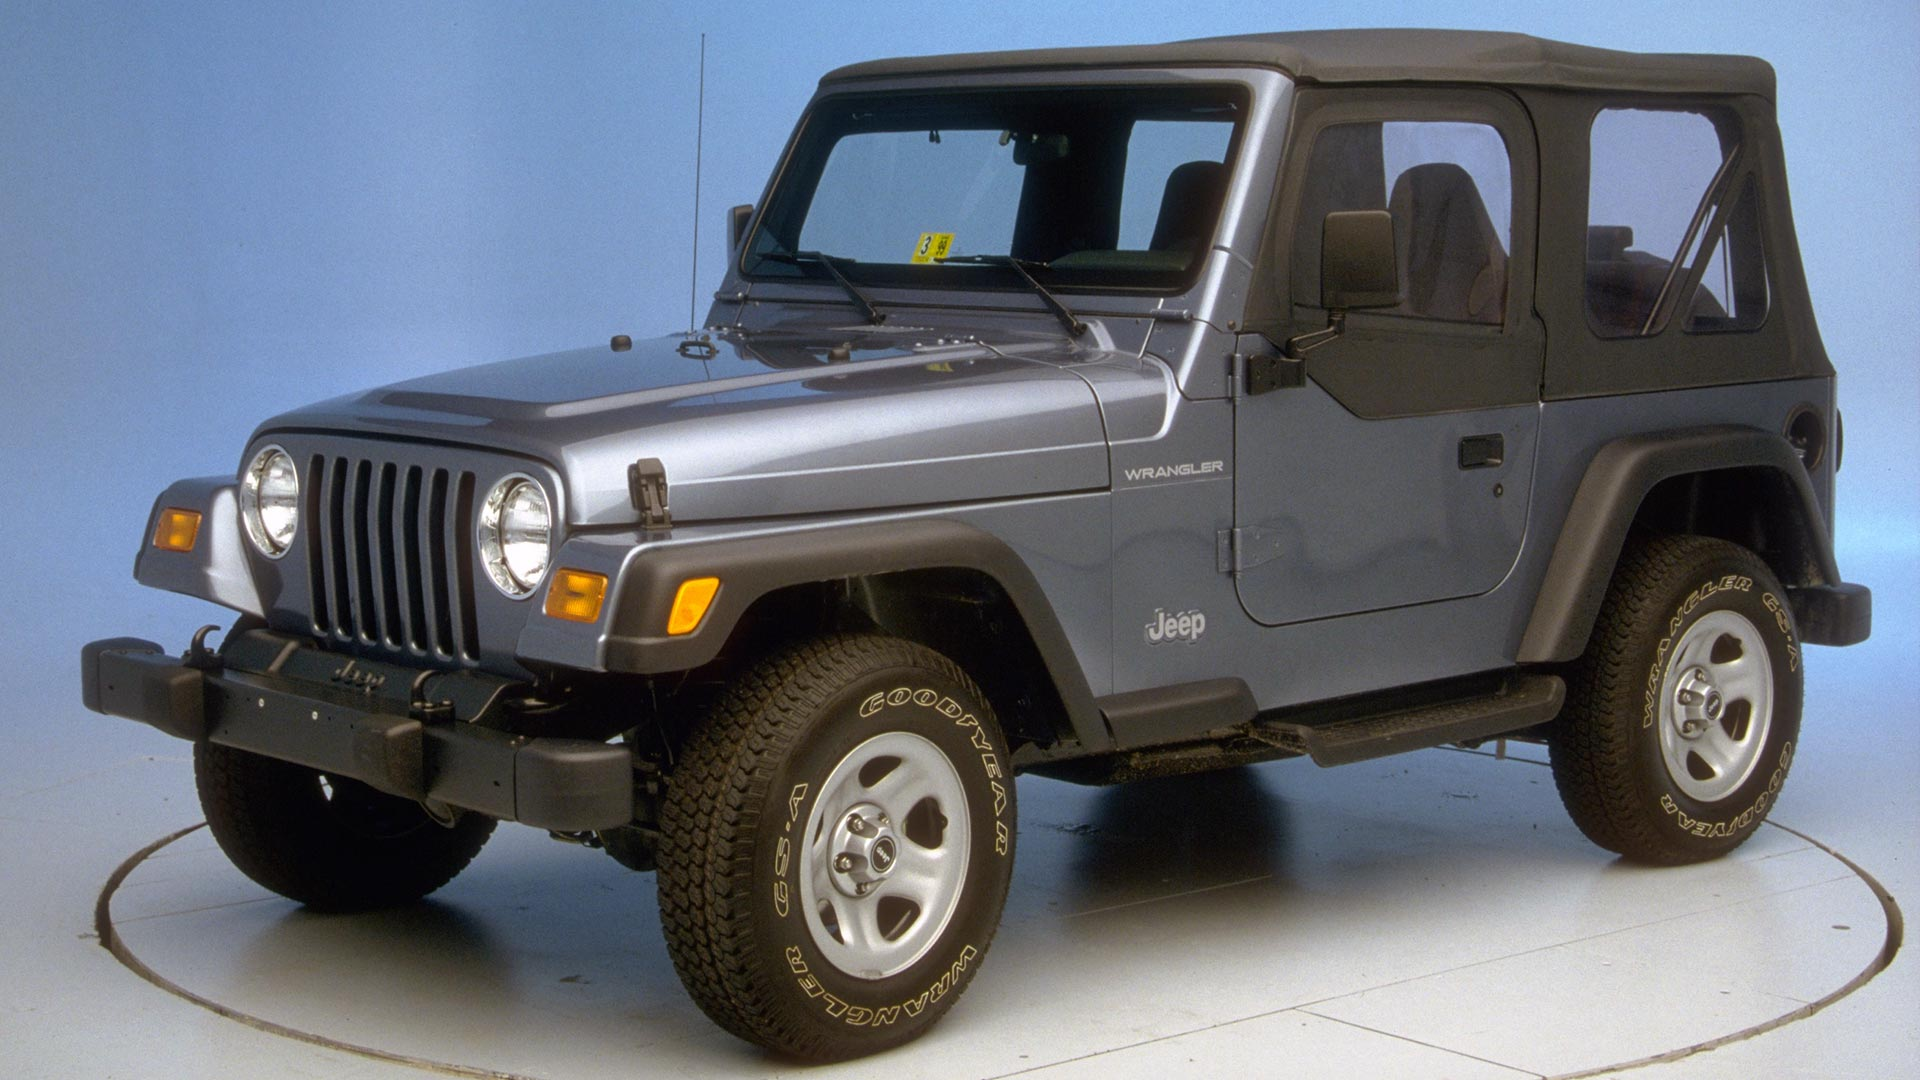 2001 Jeep Wrangler 2-door SUV